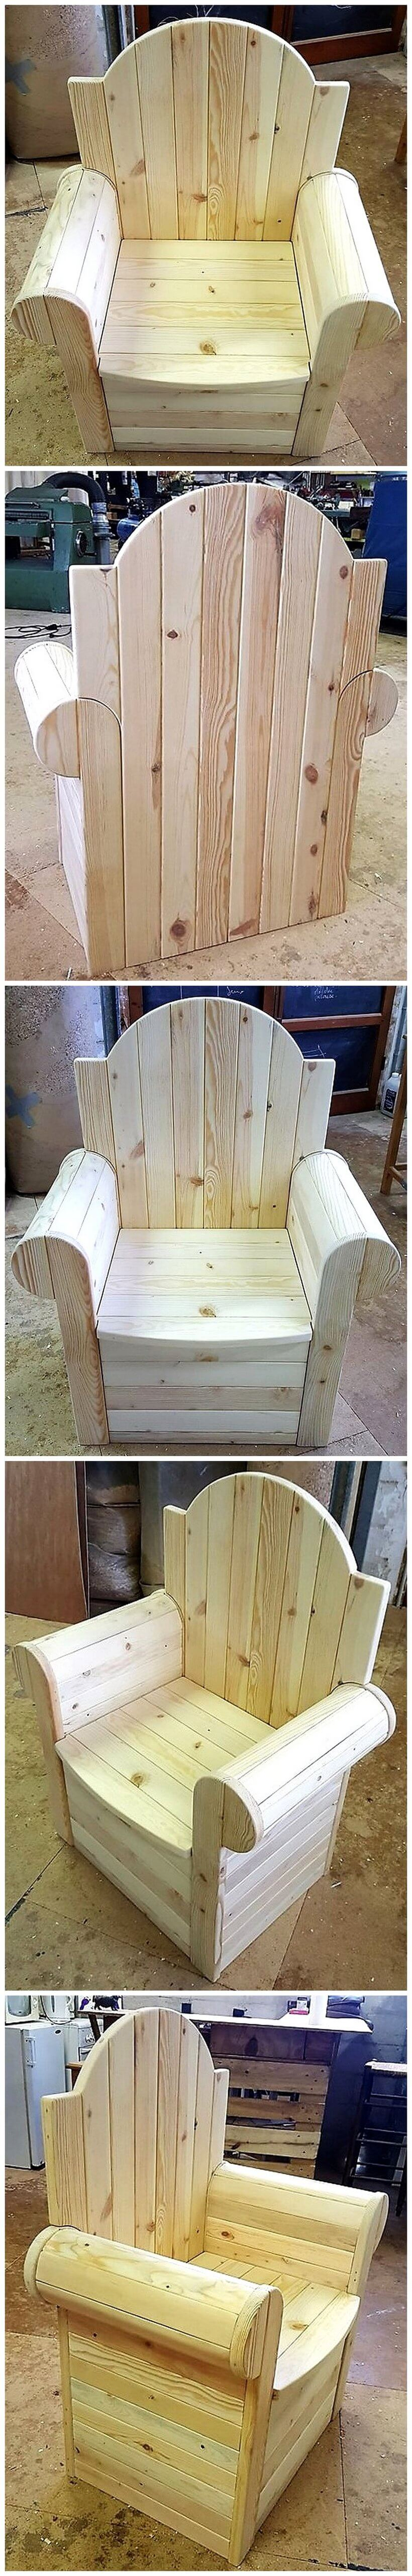 repurposed wooden pallets chair plan